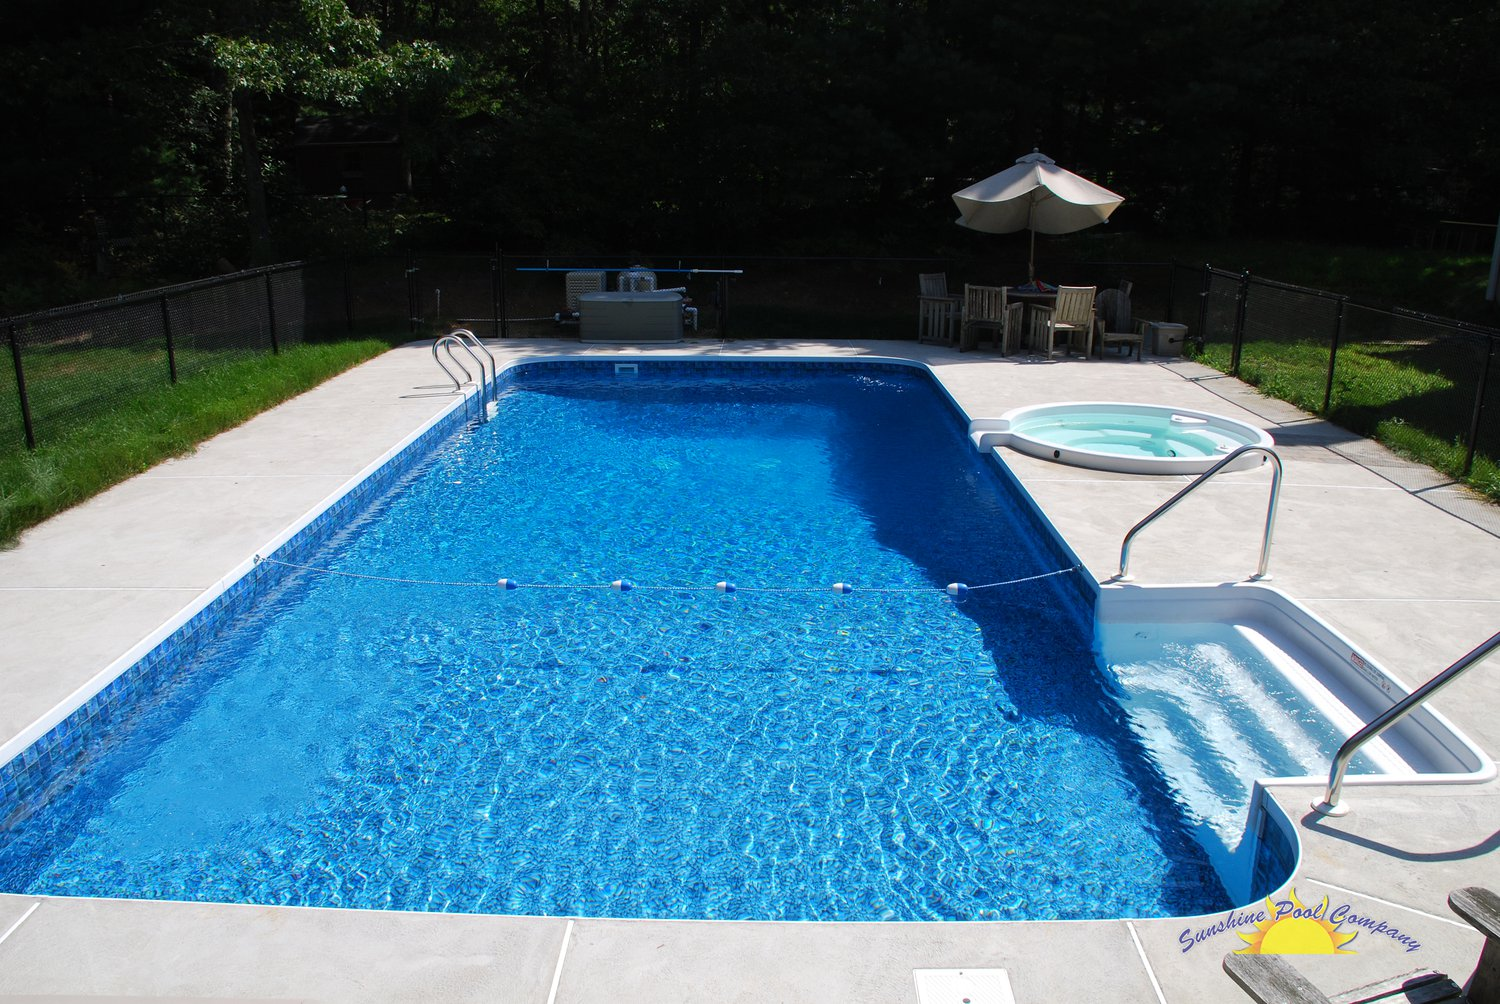 Sunshine pool company new pools in ground for Best in ground pool